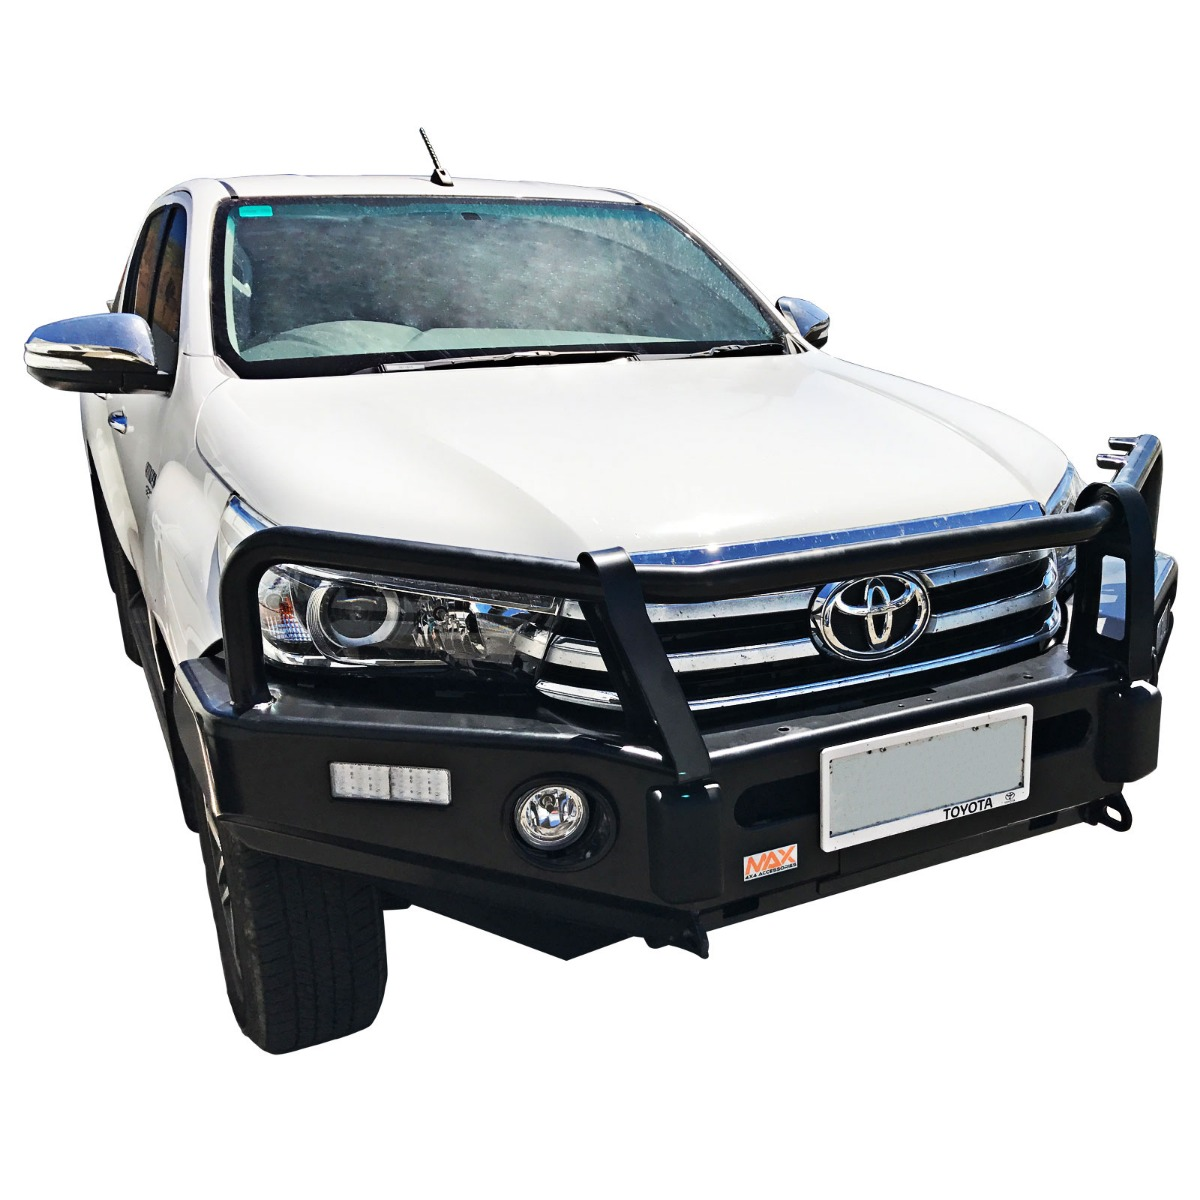 VMN offers bull-bars and manufactured to comply with AS 4876.1-2002